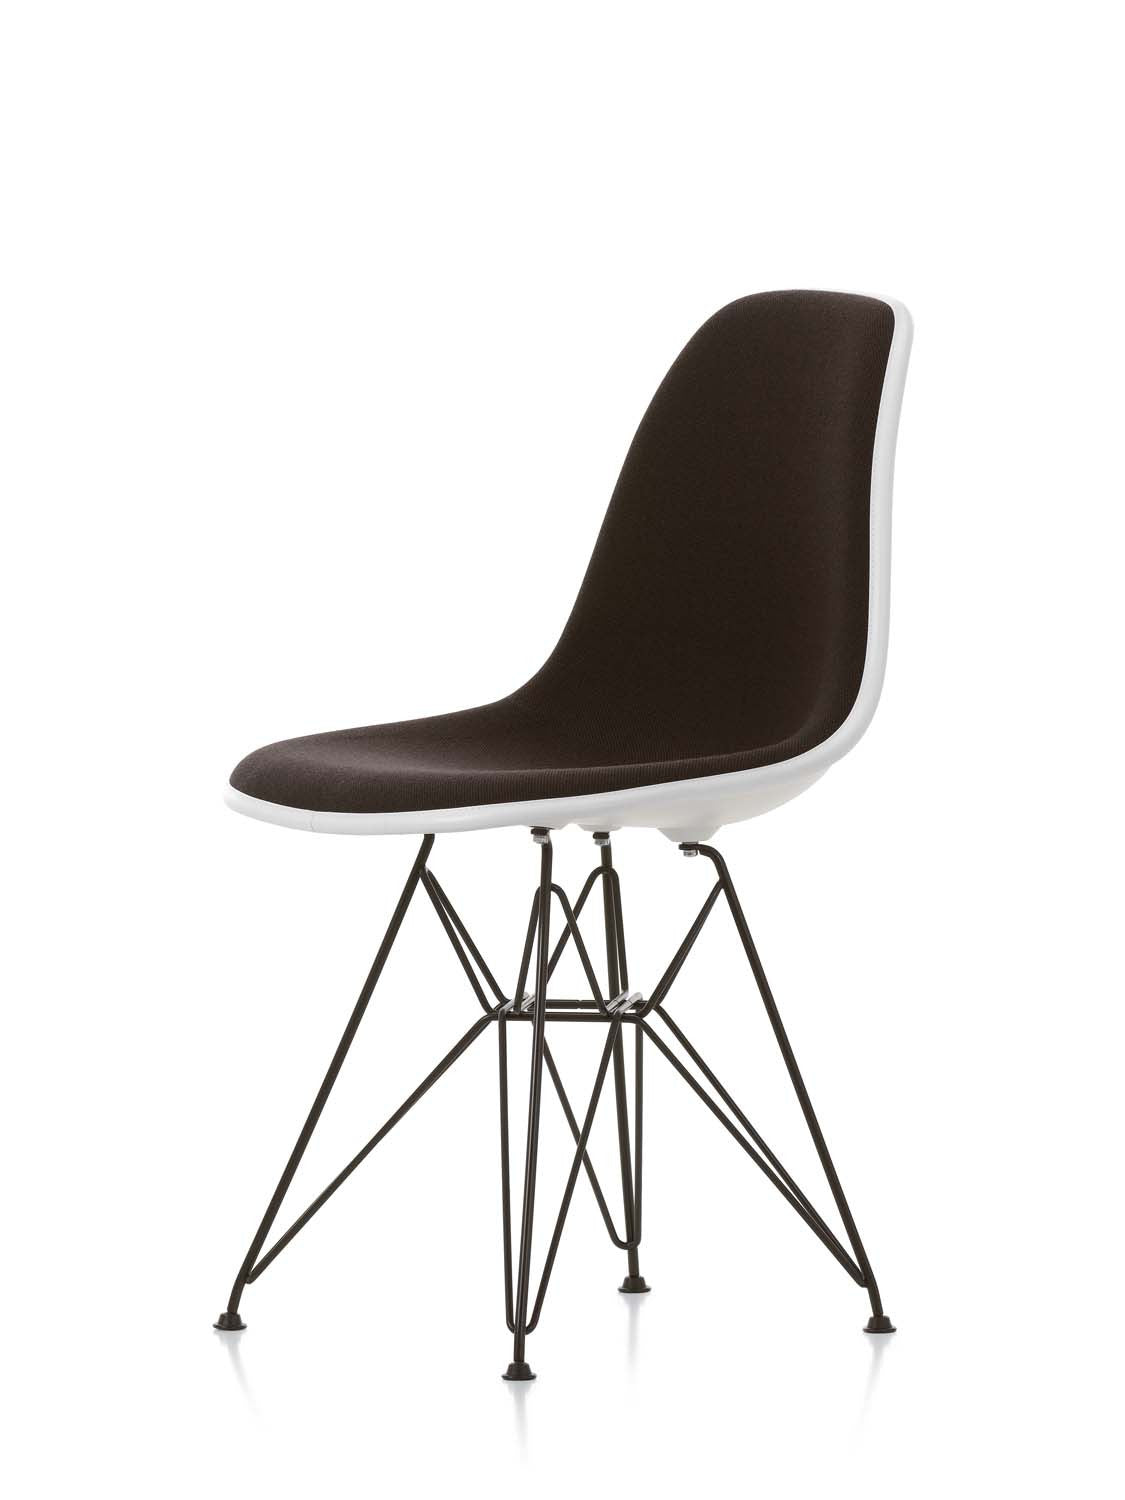 Eames DSR Chair Fully Upholstered